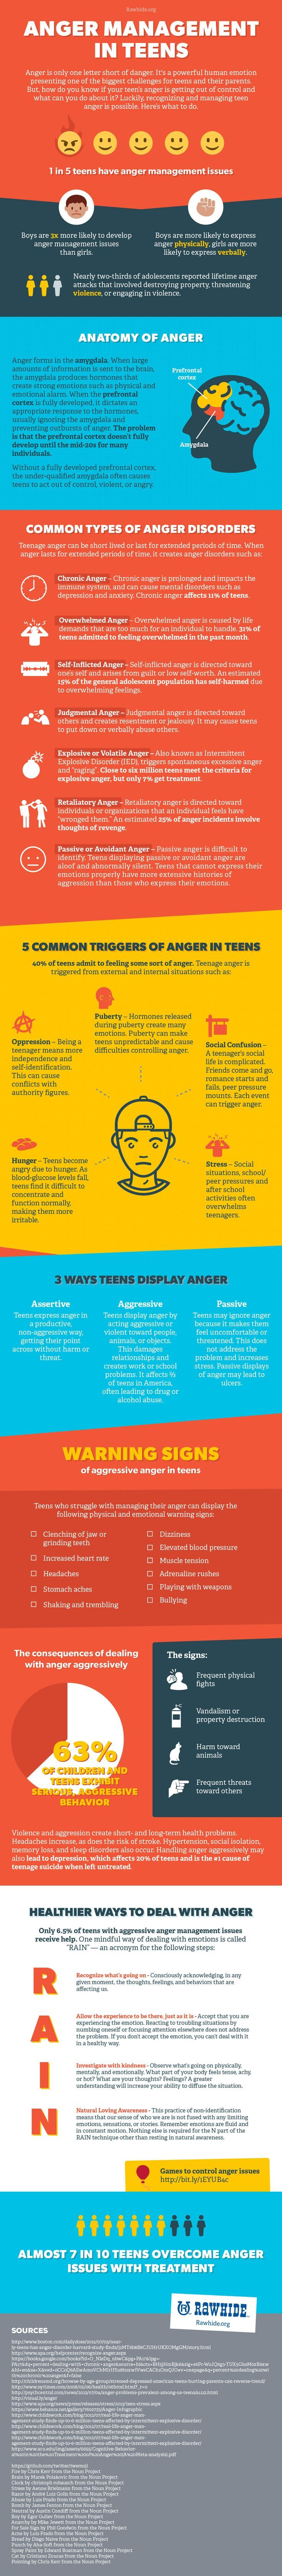 Boys are three times more likely to develop anger management issues. For more information check out our Anger Management Infogrpahic.